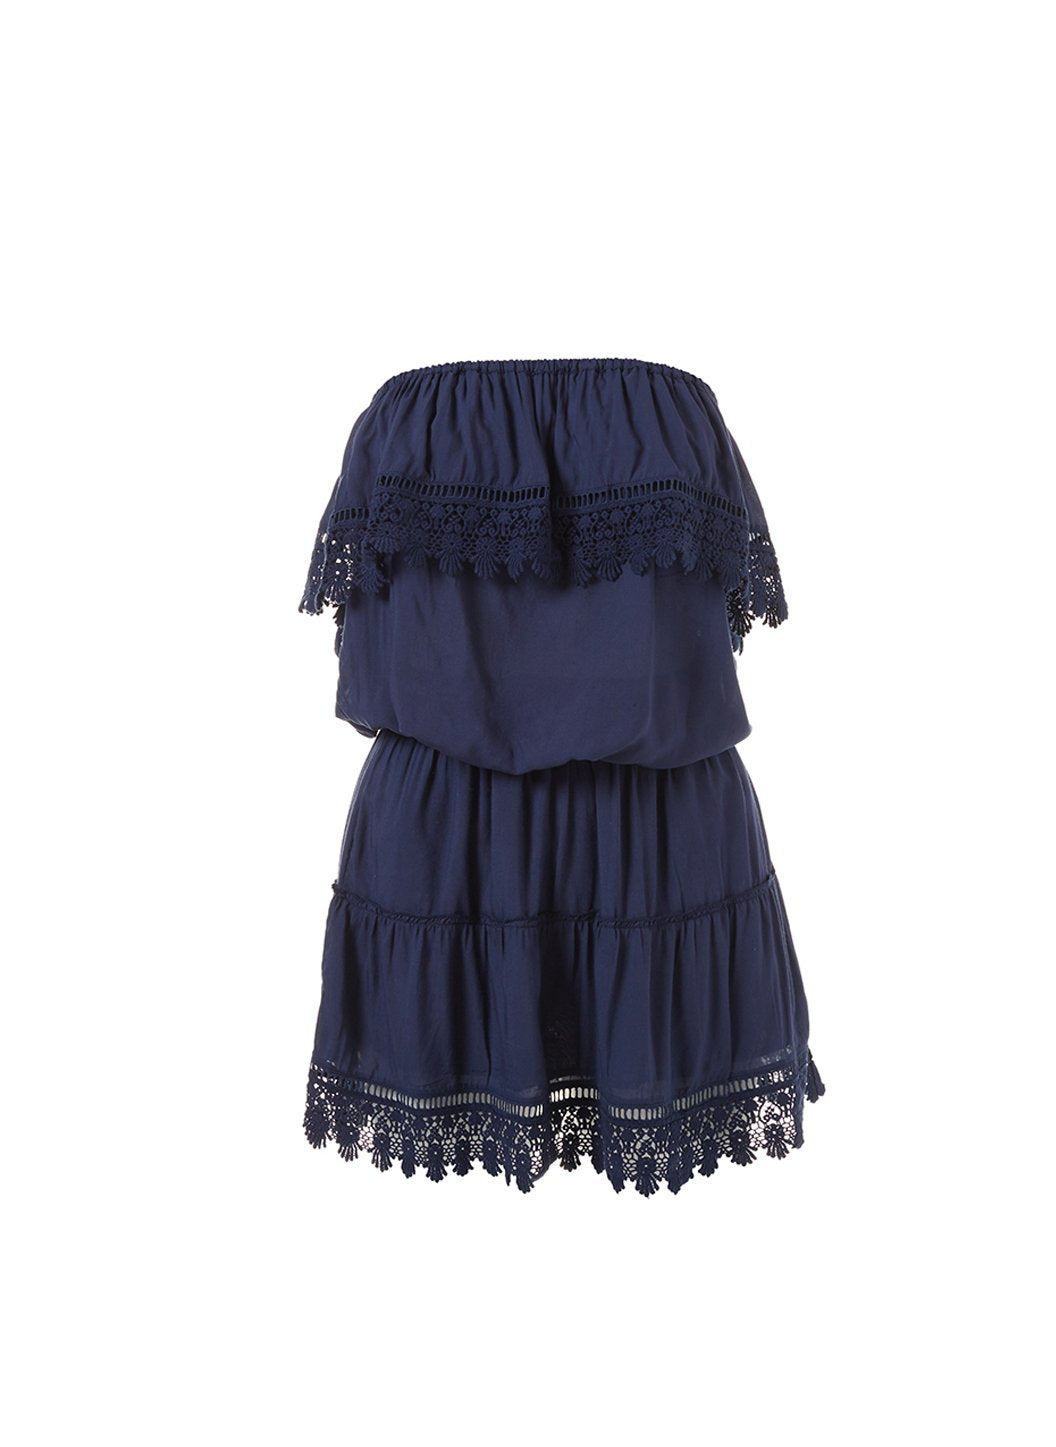 joy navy bandeau embroidered frill short dress 2019